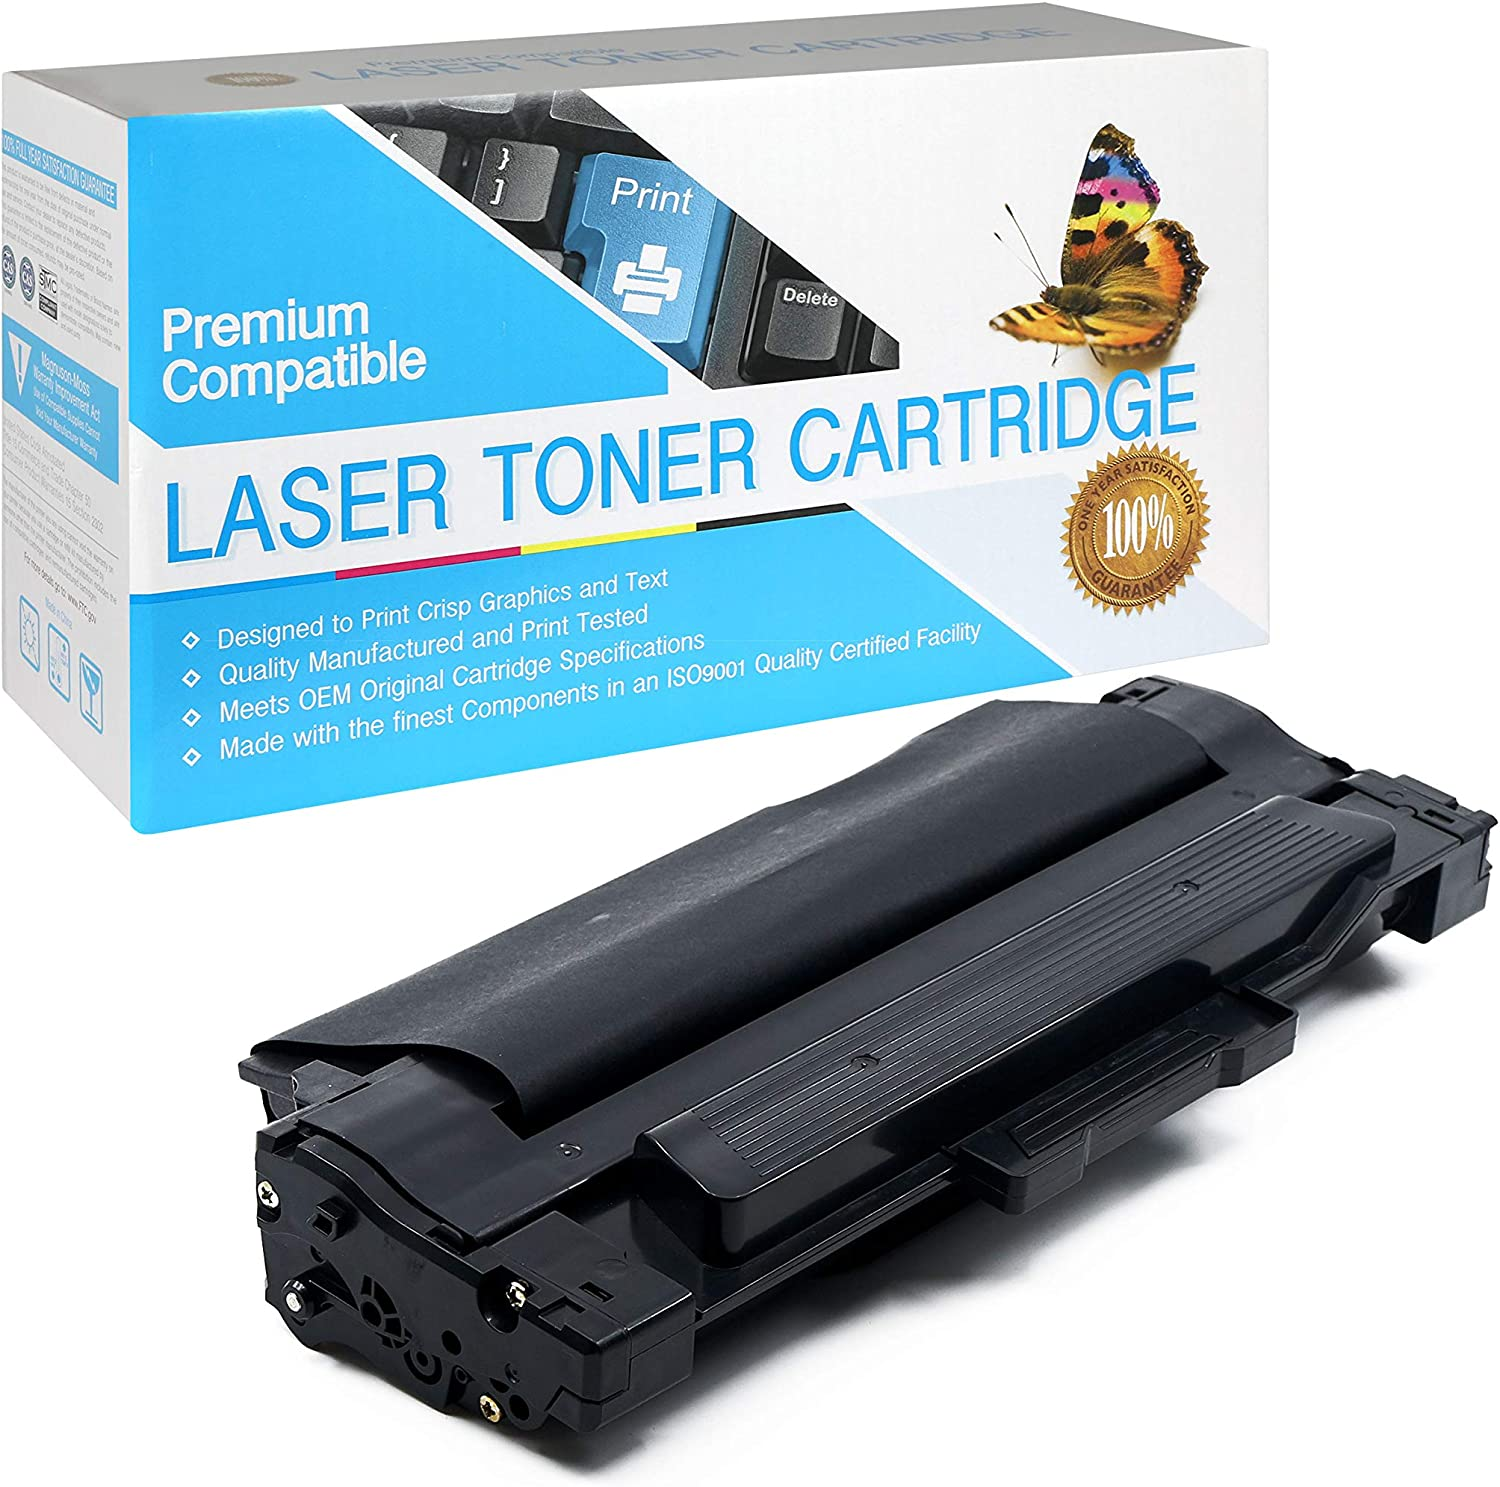 Black,1 Pack SuppliesOutlet Compatible Toner Cartridge Replacement for Samsung MLT-D105L for Use with SF-650P